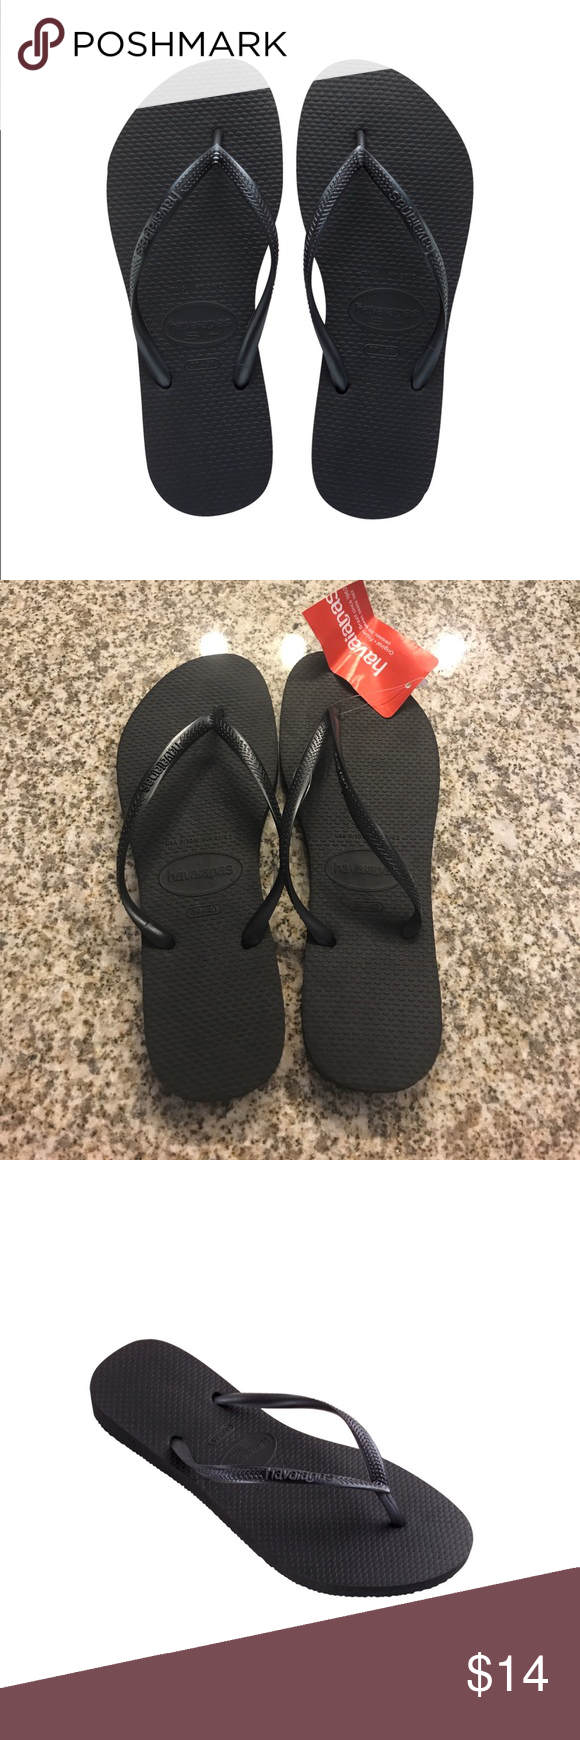 NWT Havaianas Women's Slim Black Flipflops Brand New, with tags Havaianas Women's Black Slim Flip Flops. Made in Brazil, these are made of 100% high-quality, super-soft and durable rubber. Size 9/10  🚫Trades/Holds🚫 📦Ships same day if PO is open📦 💰Firm Price Havaianas Shoes Sandals